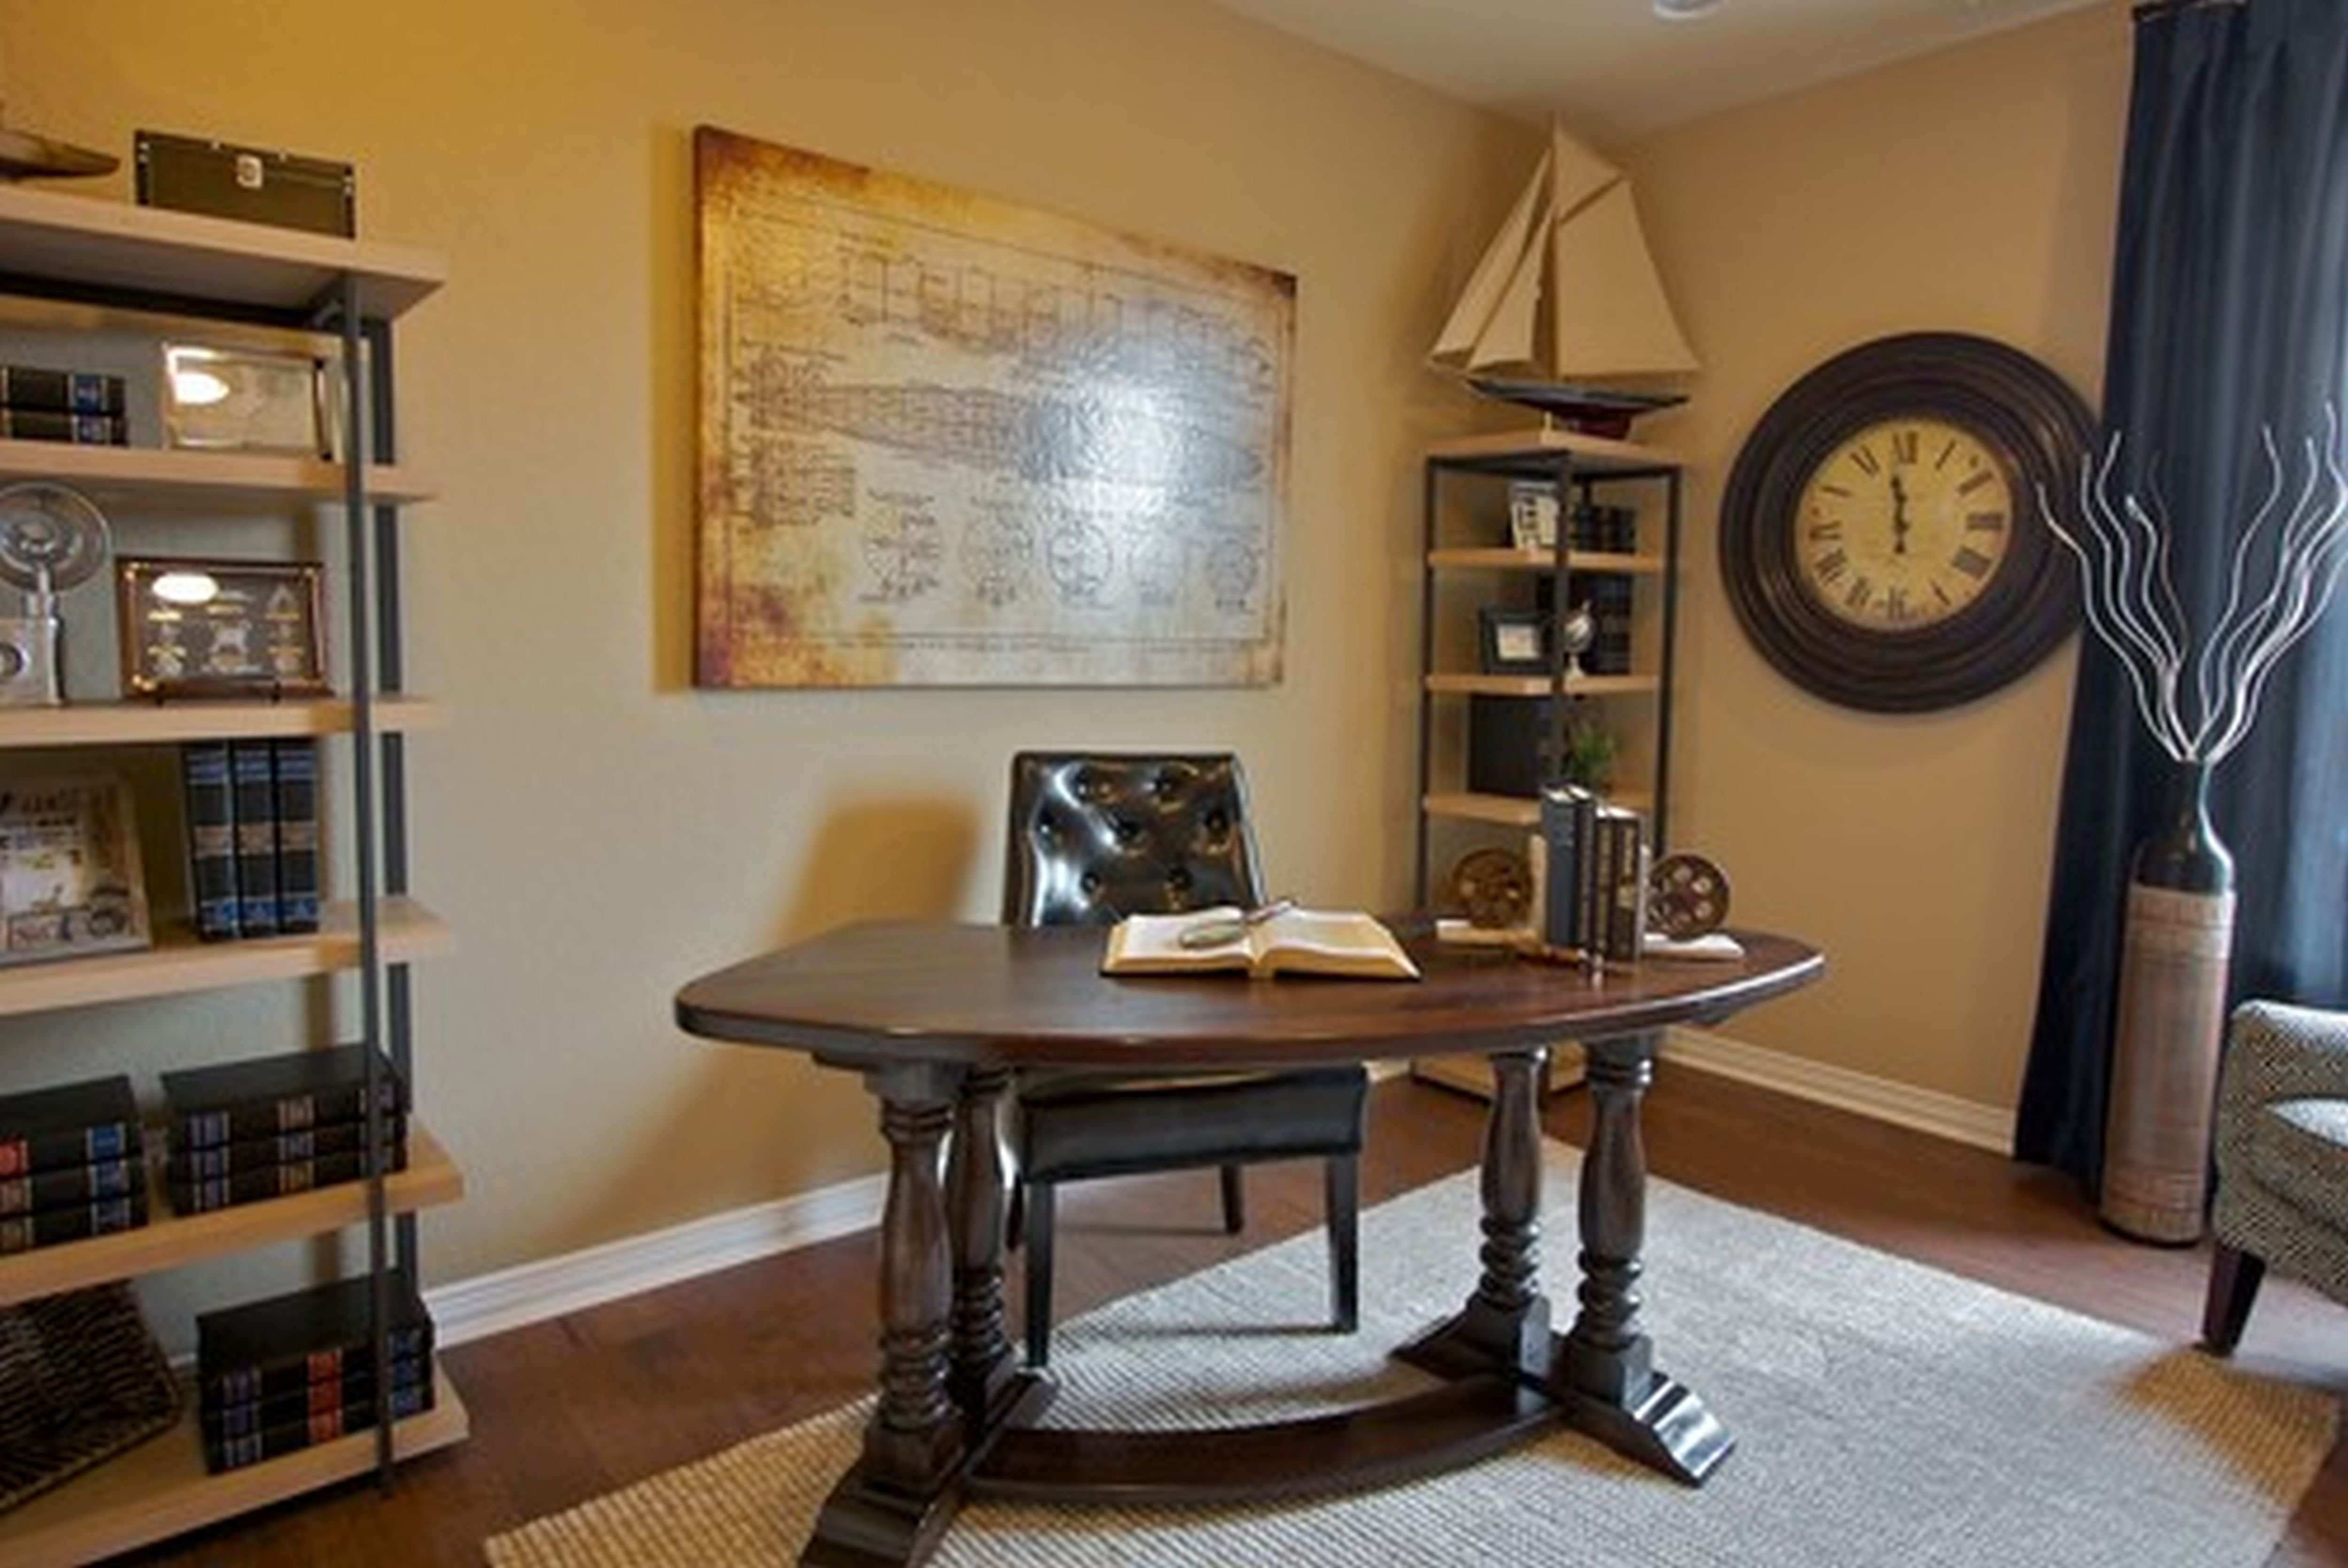 10 Best Decorating Ideas For Home Office decorating ideas for a home office new decoration ideas good mens 2020